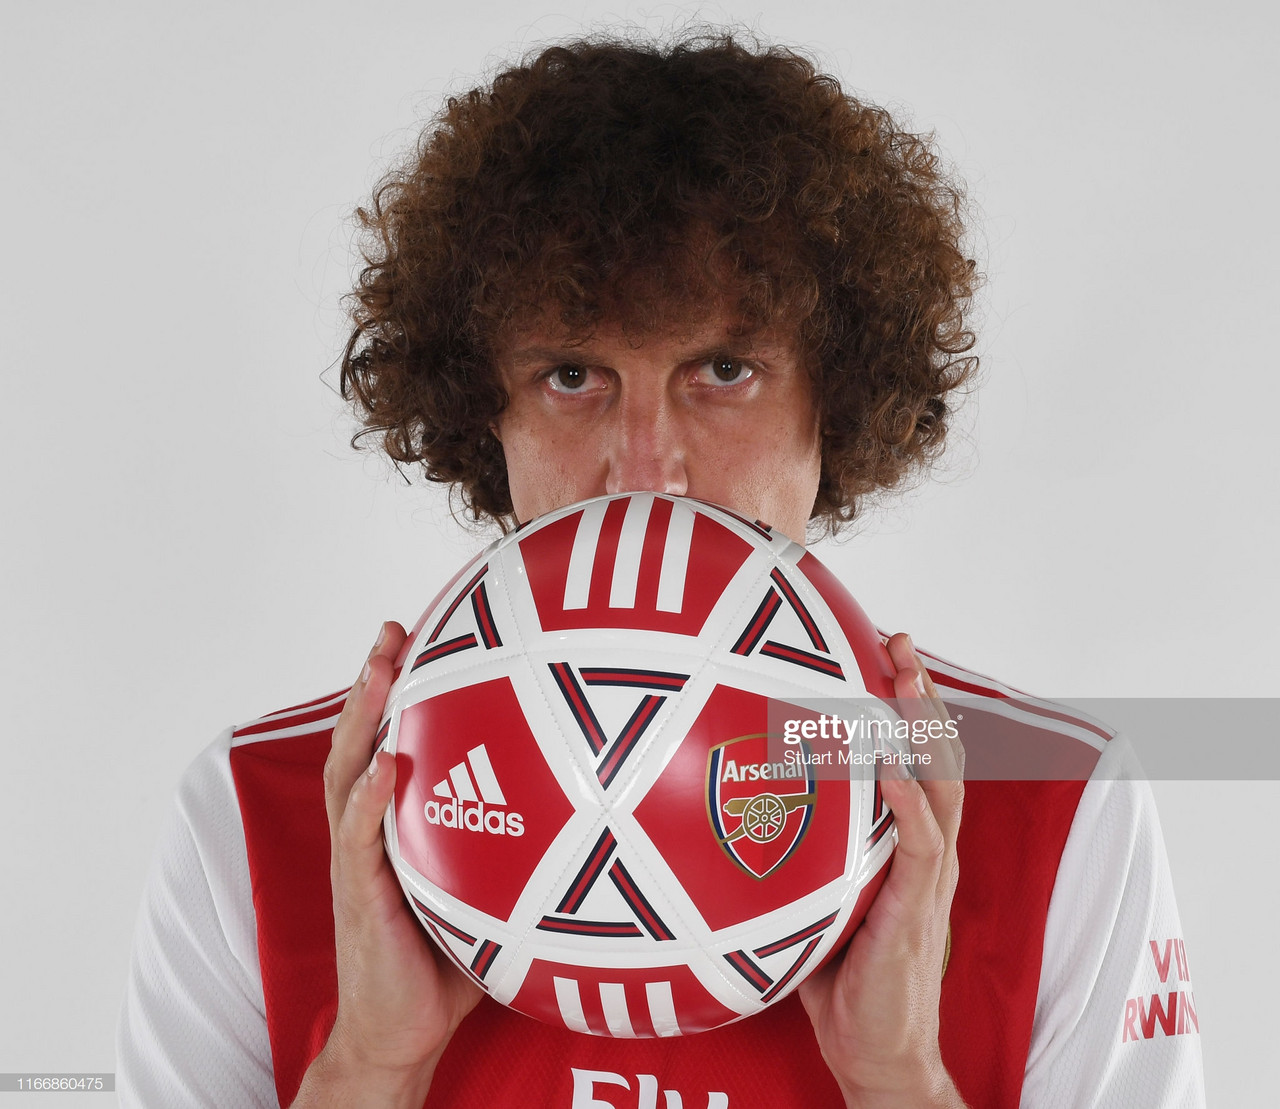 David Luiz signs for Arsenal on Deadline Day